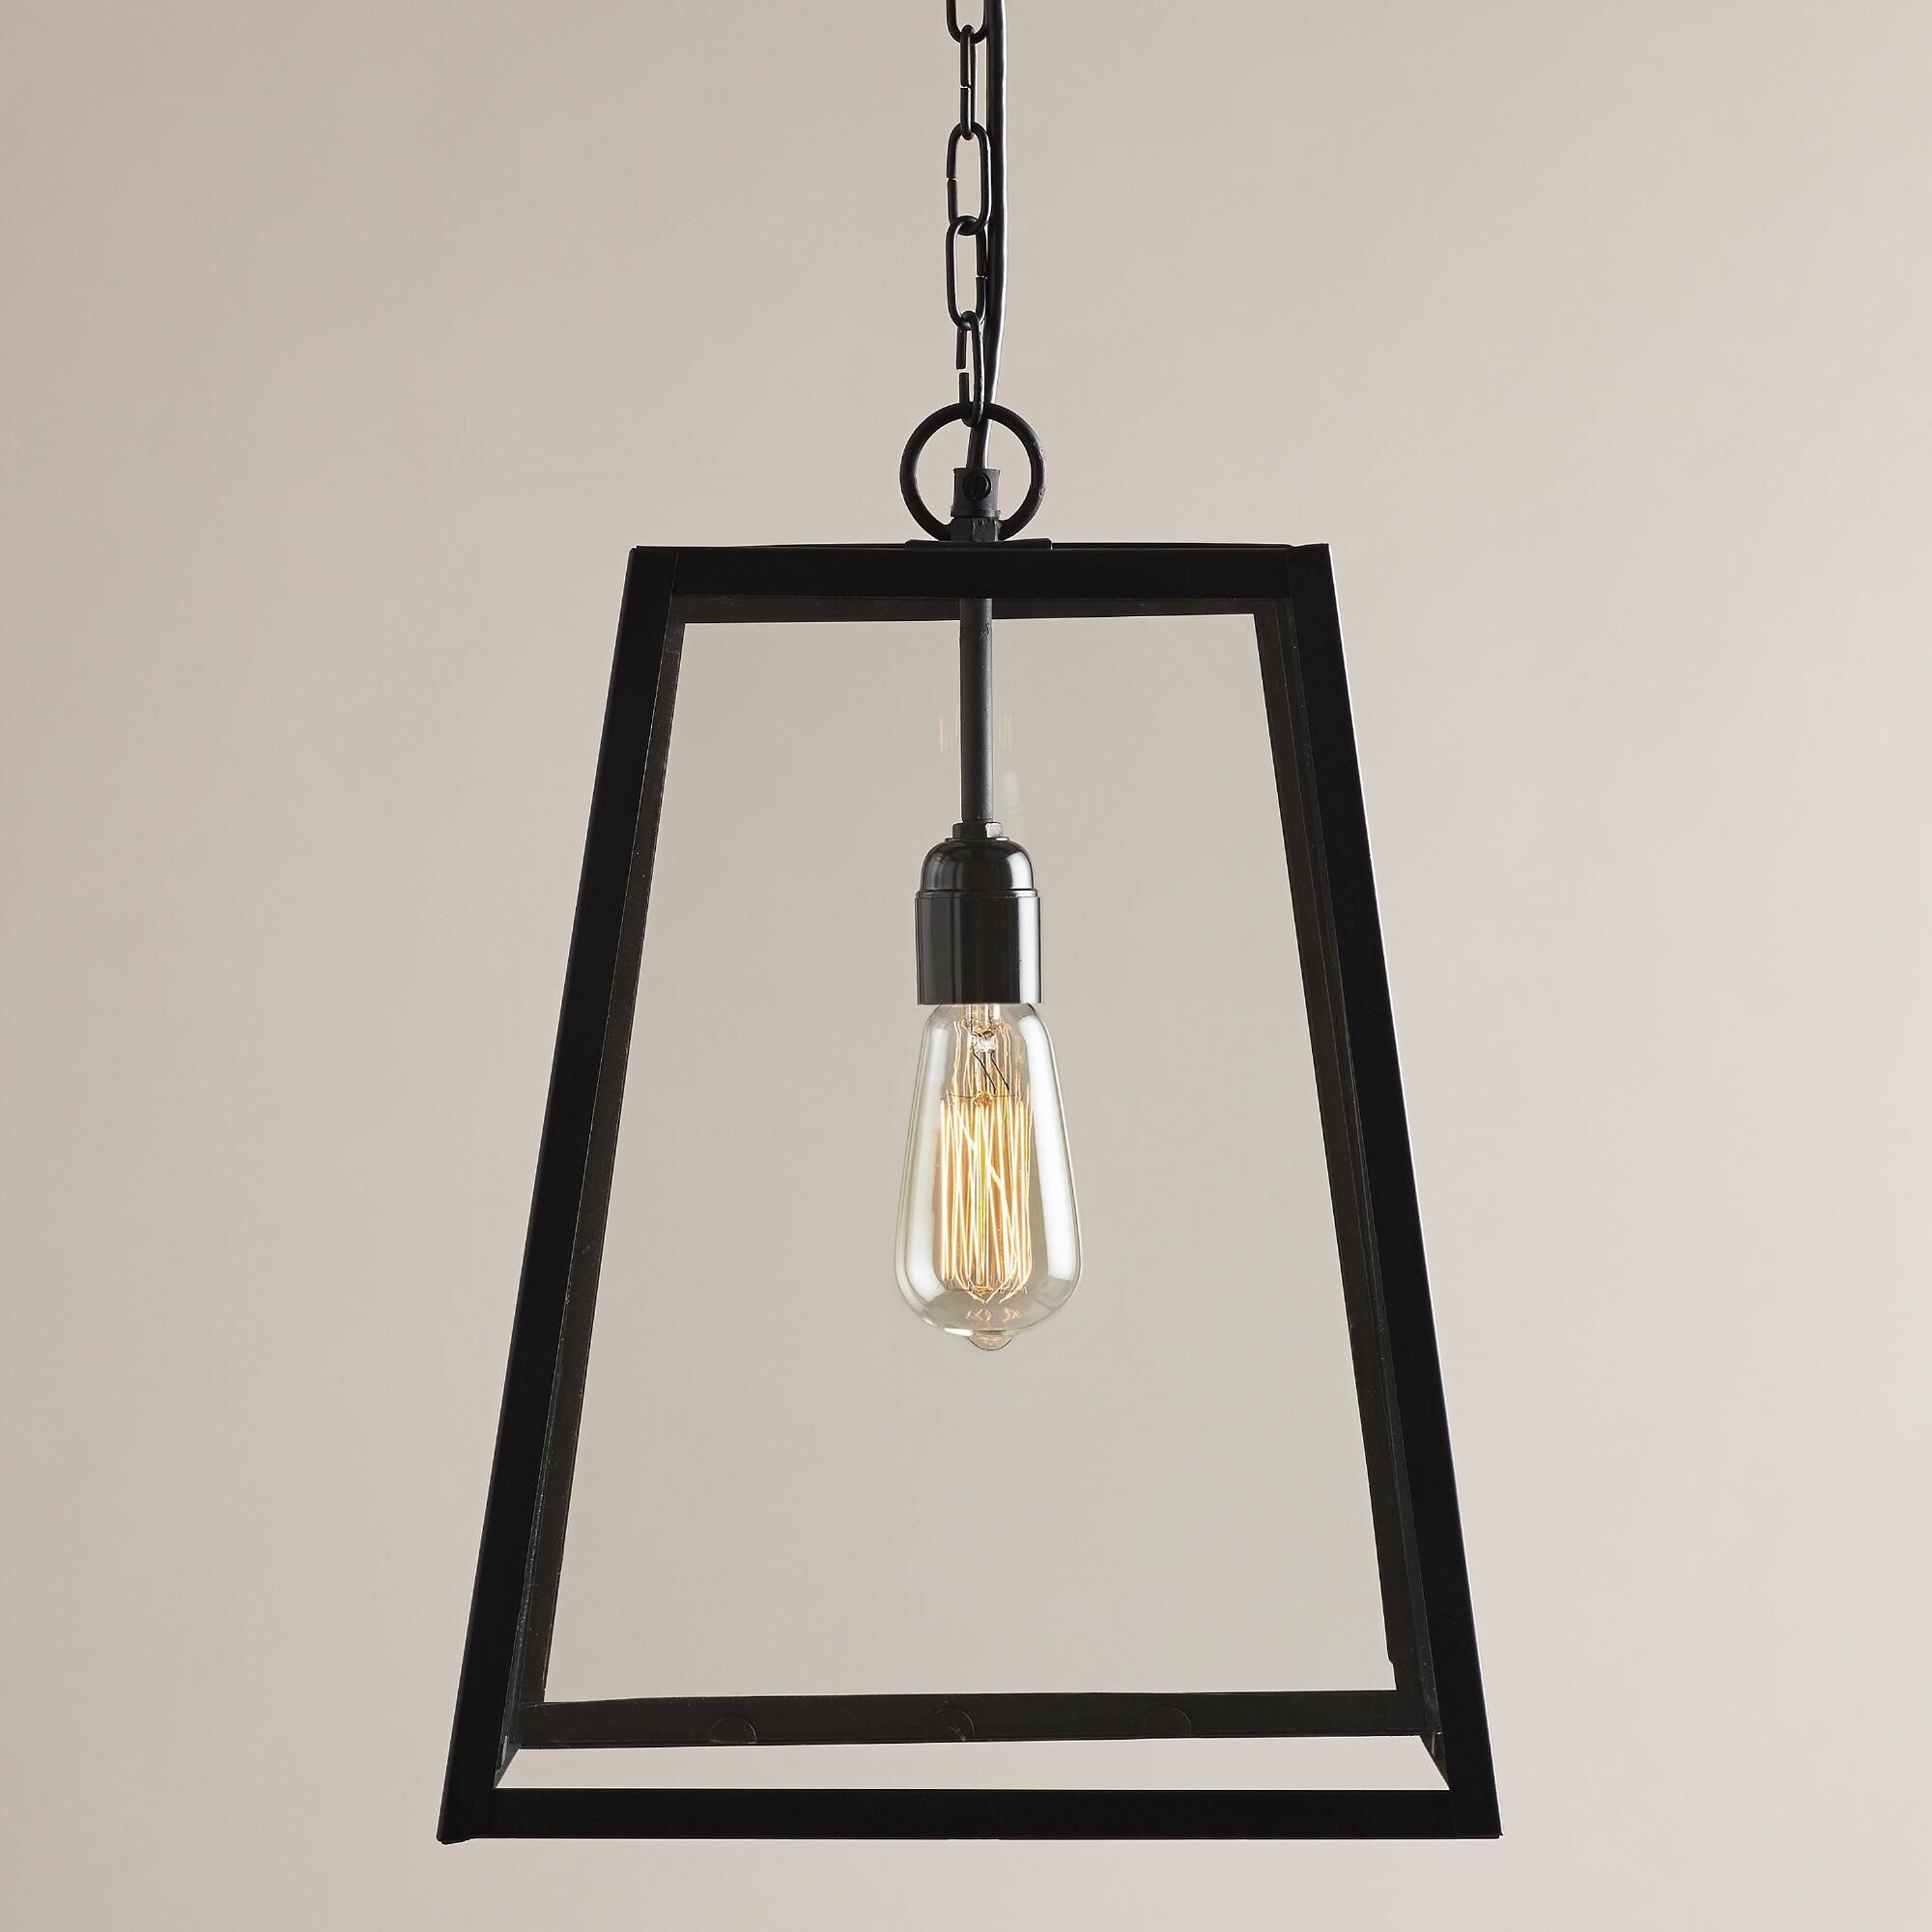 Our Sleek Four-Sided Glass Hanging Pendant Lantern Is